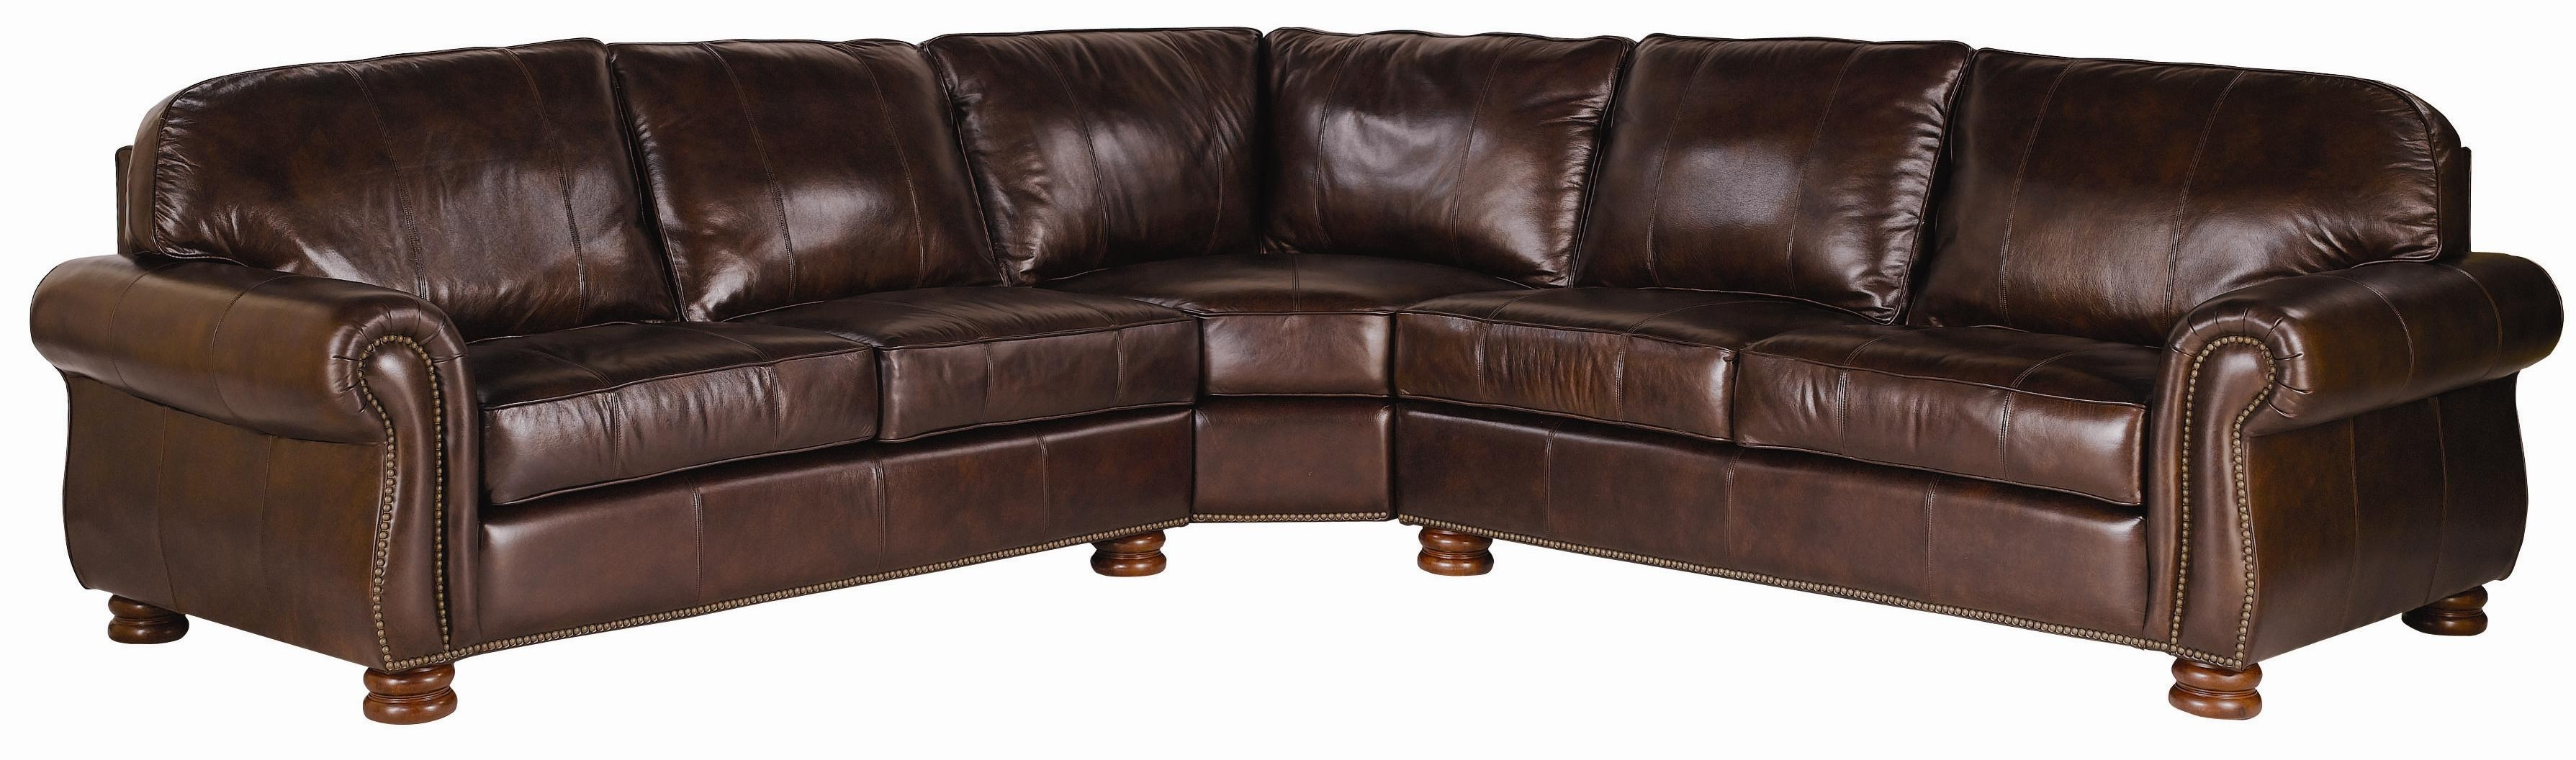 Thomasville® Leather Choices – Benjamin Leather Select 3 Piece For Thomasville Sectional Sofas (View 5 of 10)